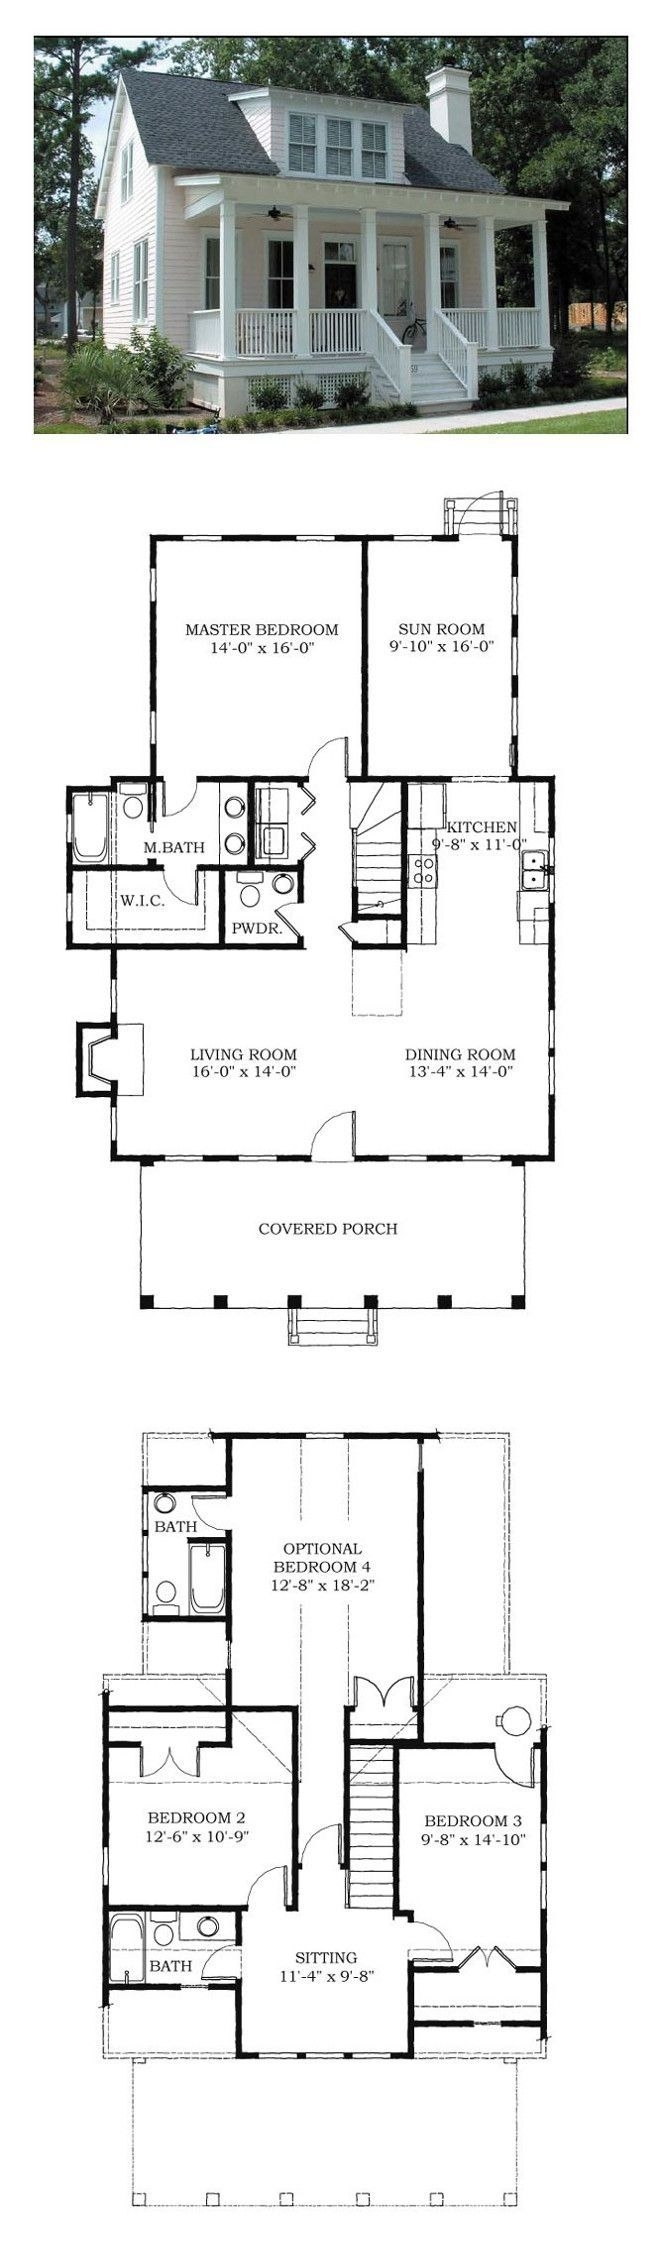 Best 10+ Small House Floor Plans Ideas On Pinterest | Small House in Best Layout For Lakeview Gardens Apartments Design Ideas